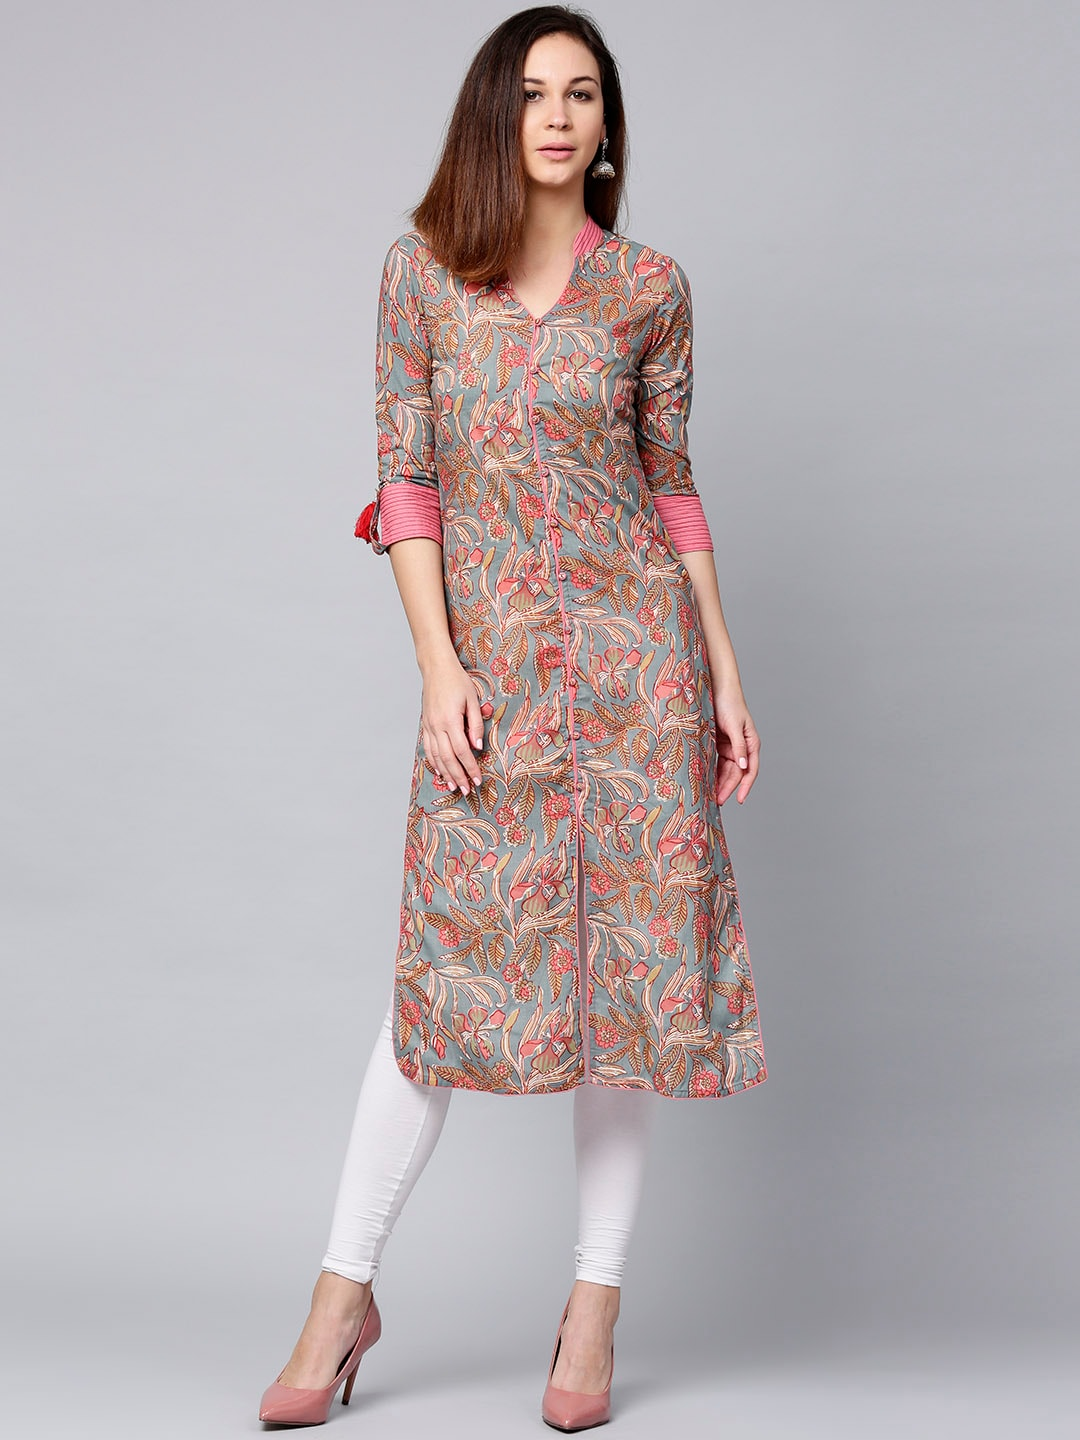 7d530824806db5 Floral Kurtas - Buy Floral Kurtas online in India